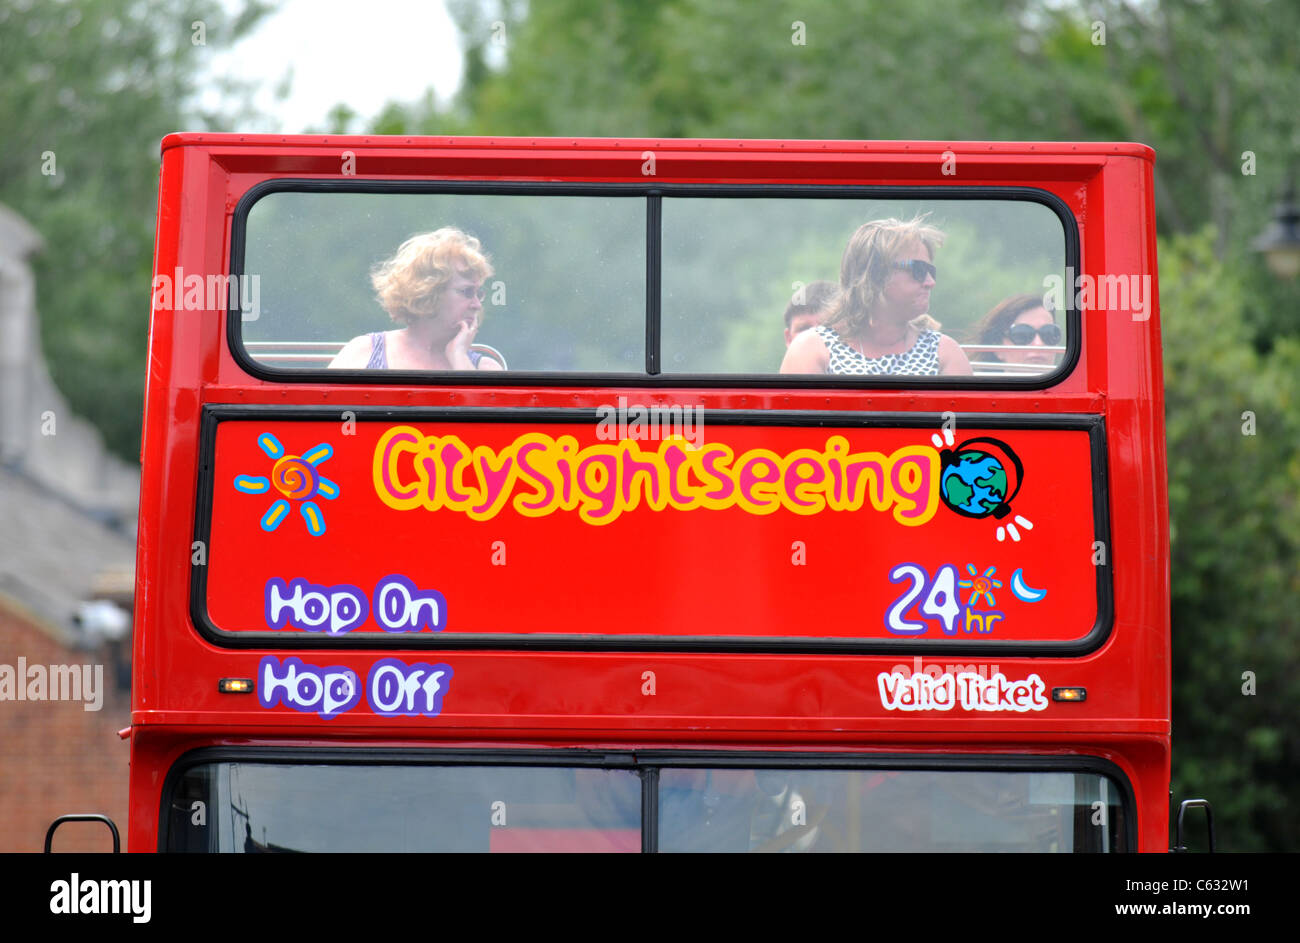 Touristischen Sightseeing Bus, Eton, Berkshire, England, UK Stockbild